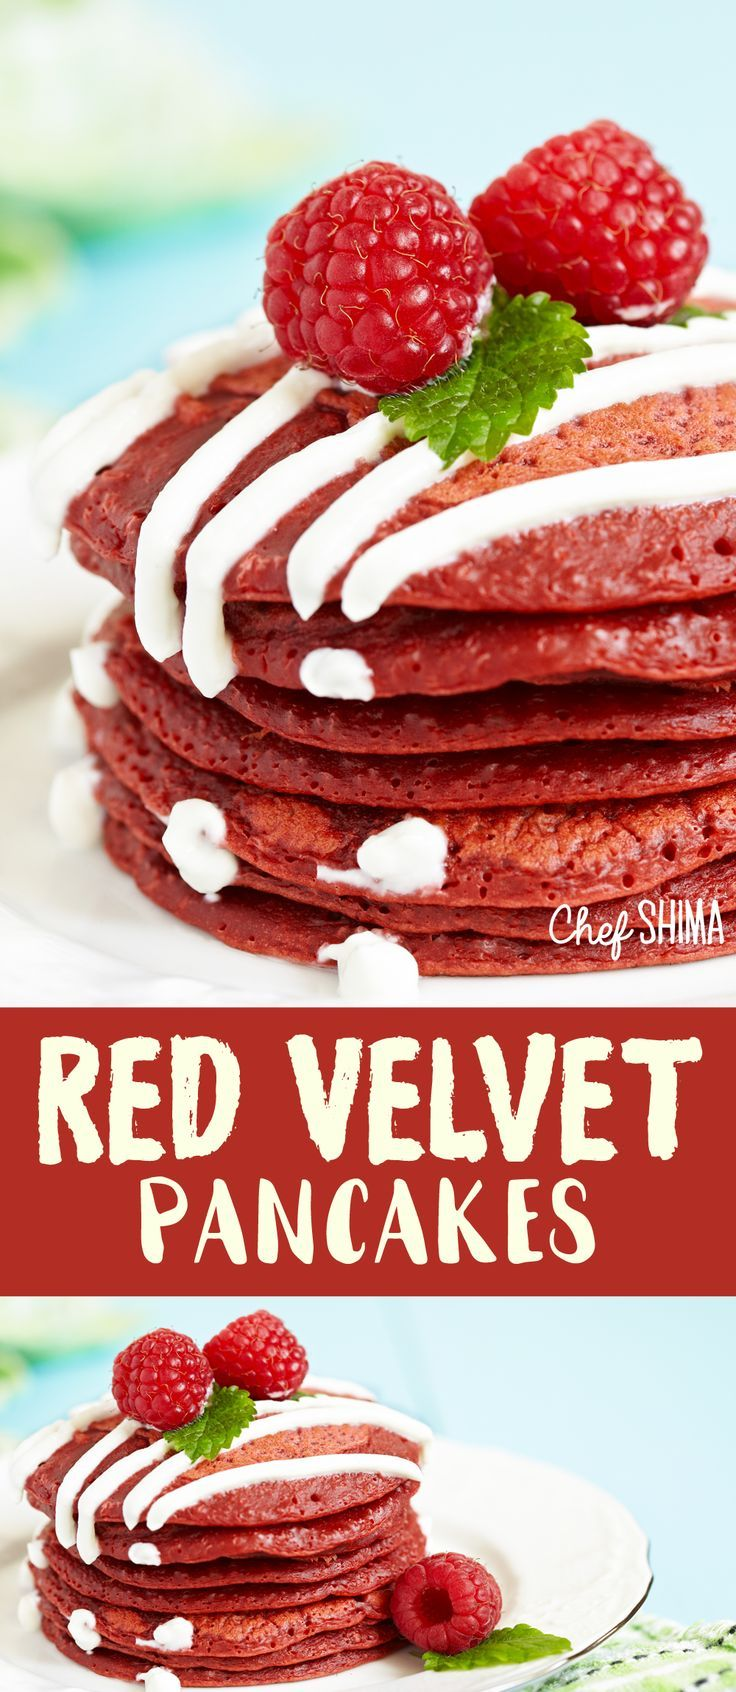 Red Velvet Pancakes | DELICIOUS! I'm addicted to red velvet... yummy!